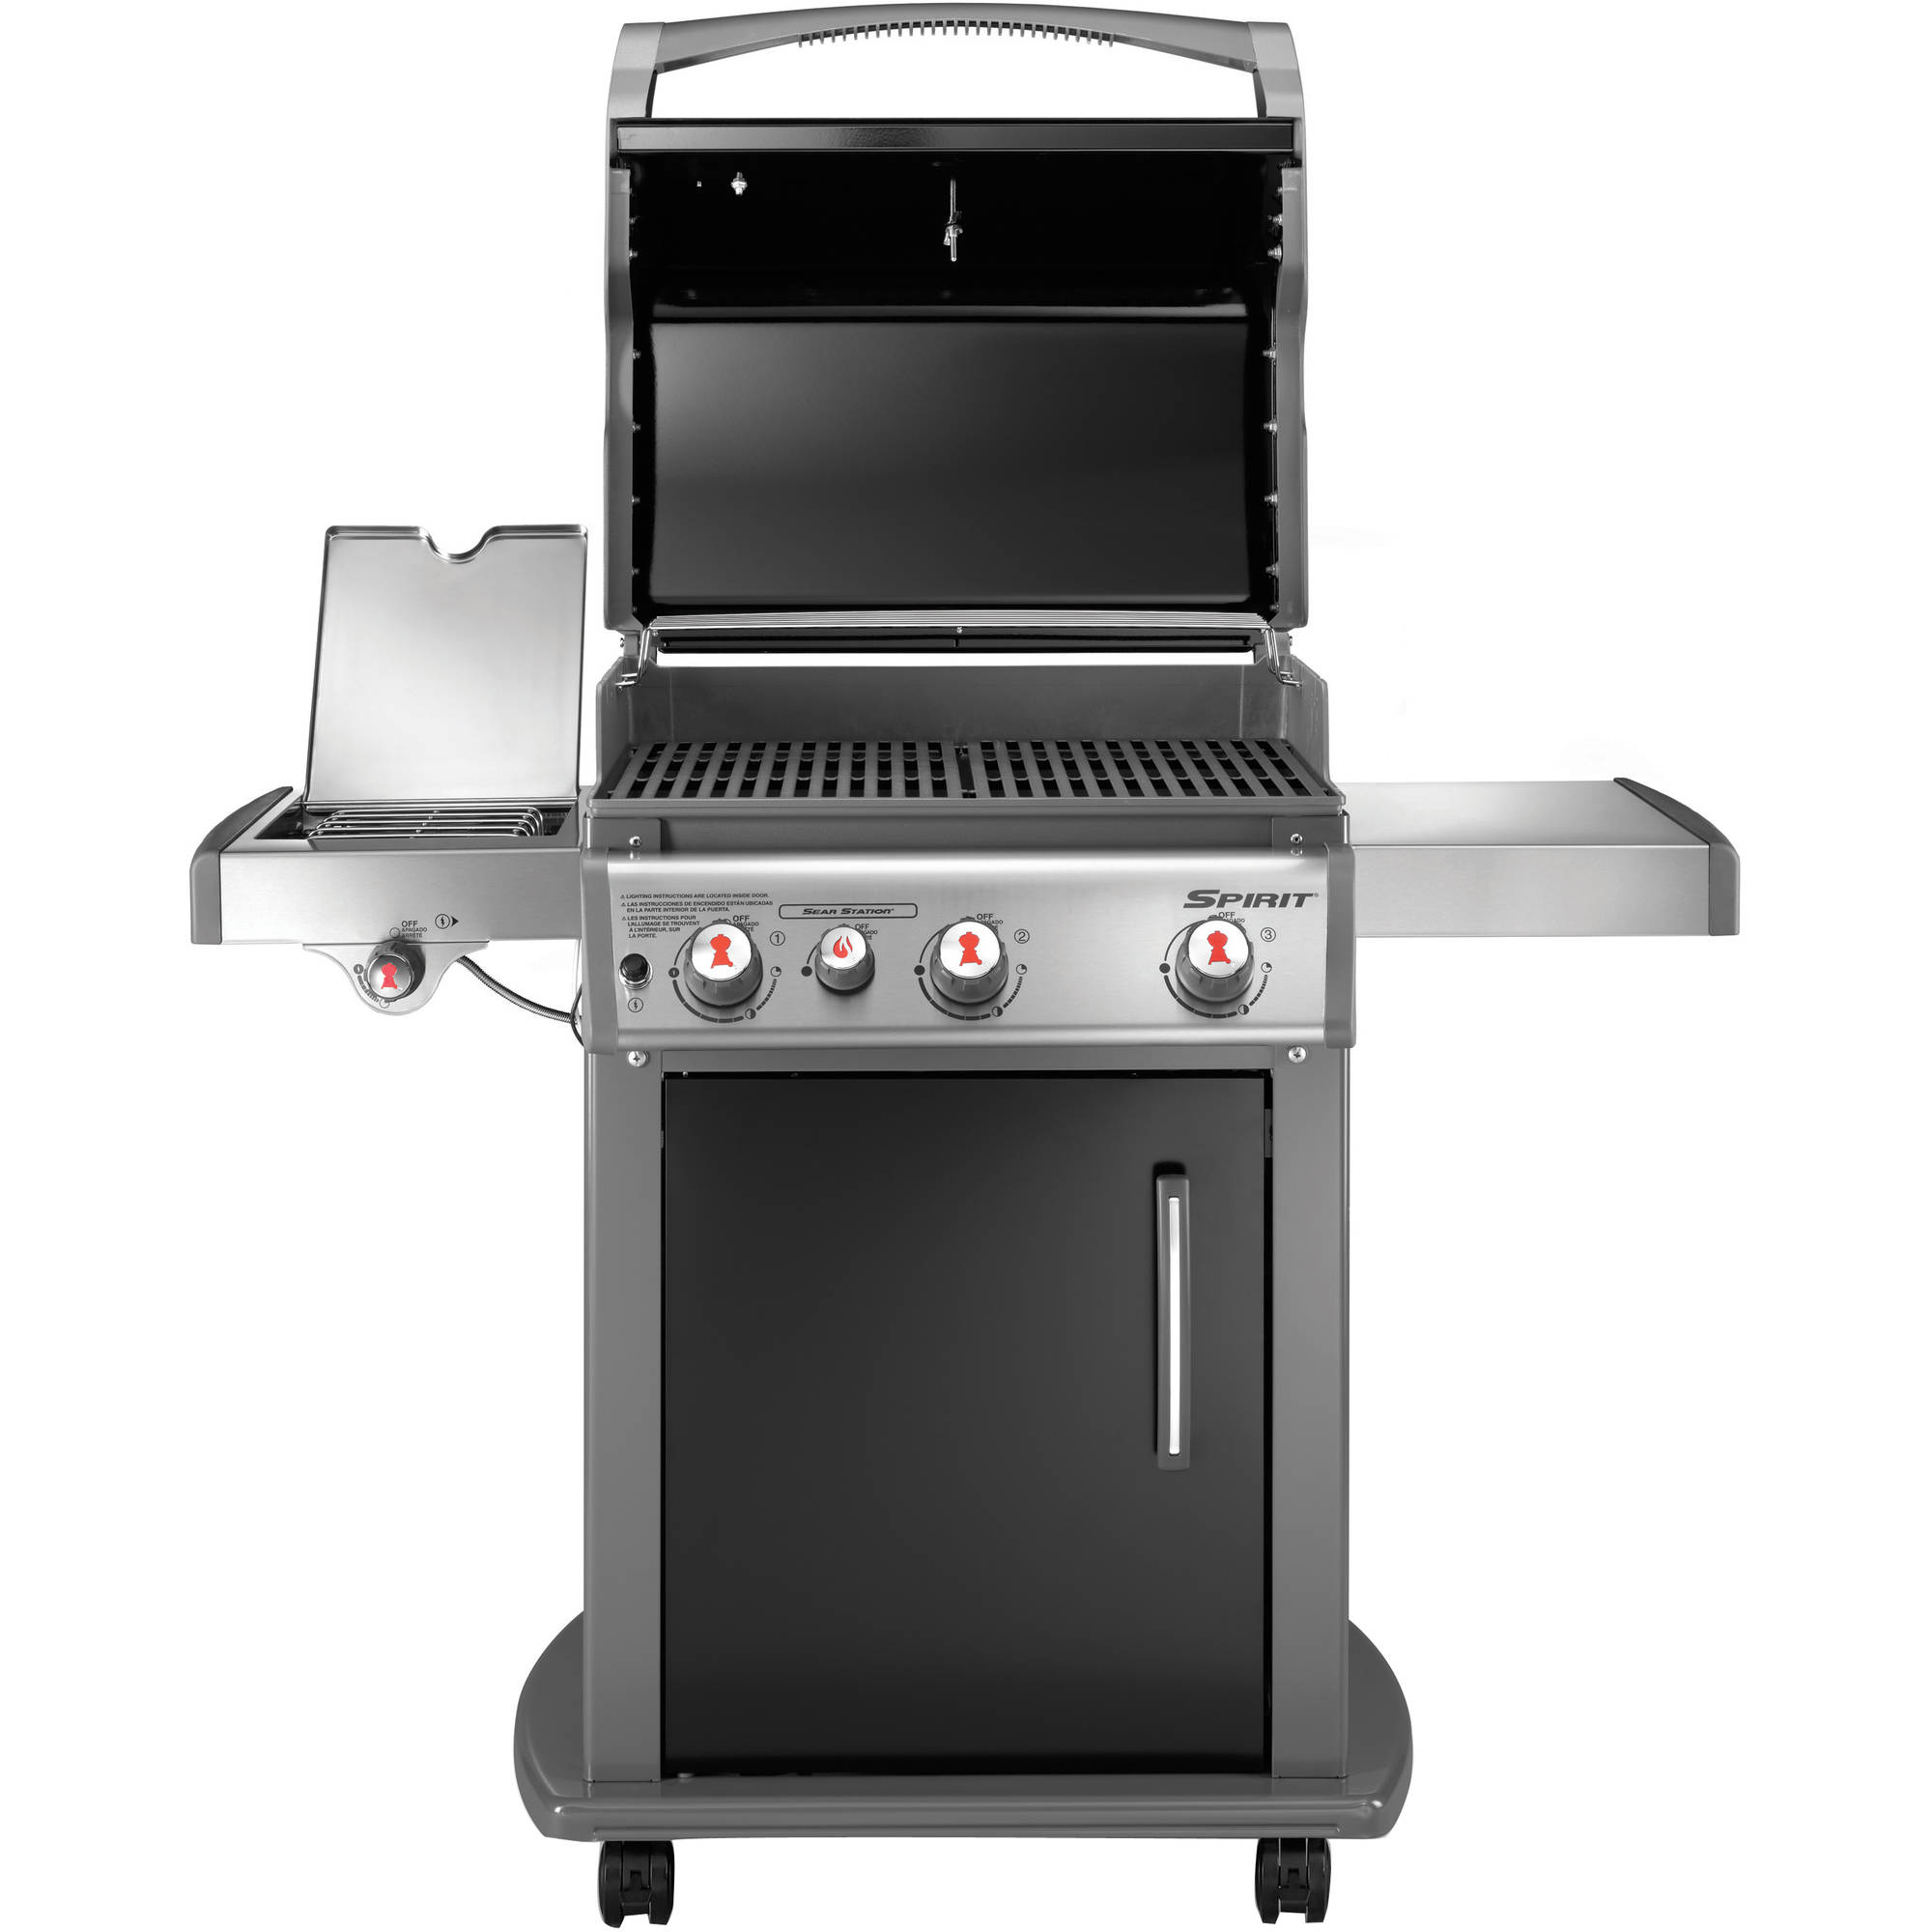 Lp gas propane grill black stainless steel outdoor